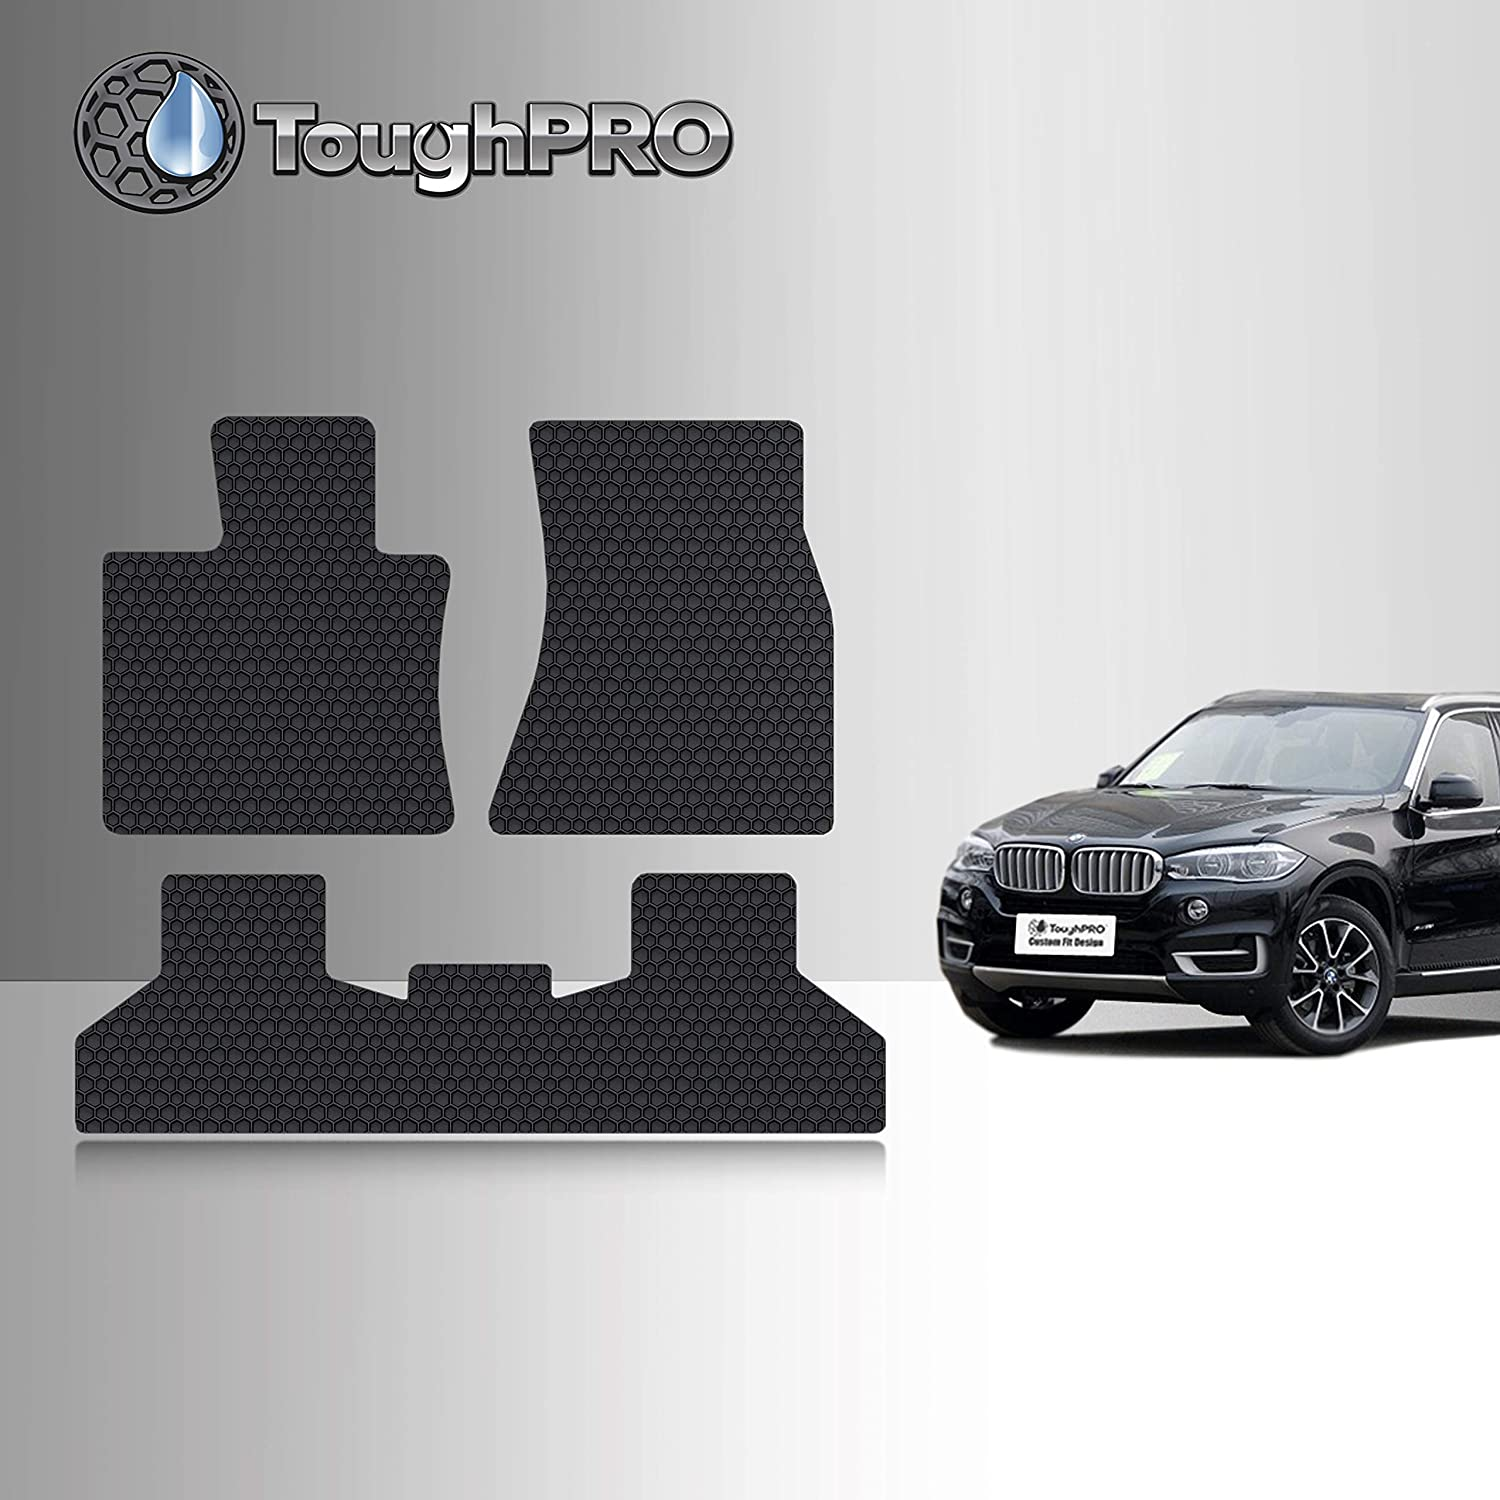 2017 2016 2014 Made in USA 2018 TOUGHPRO Floor Mat Accessories Set Compatible with BMW X5 All Weather Front Row + 2nd Row - Black Rubber 2015 Heavy Duty -